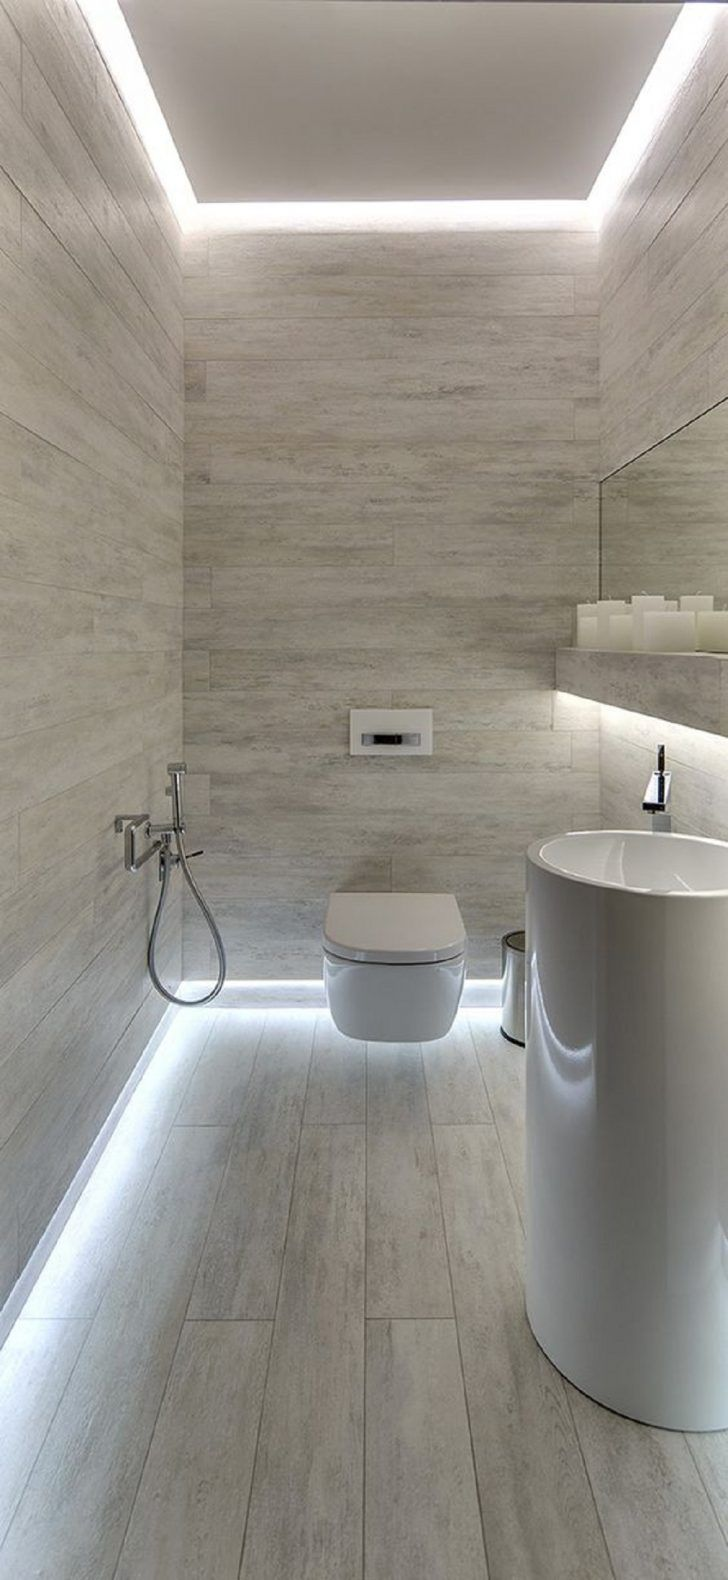 Small Floor Spotlights Stunning Small Bathroom With Hidden Lighting Fixtures On Ceiling